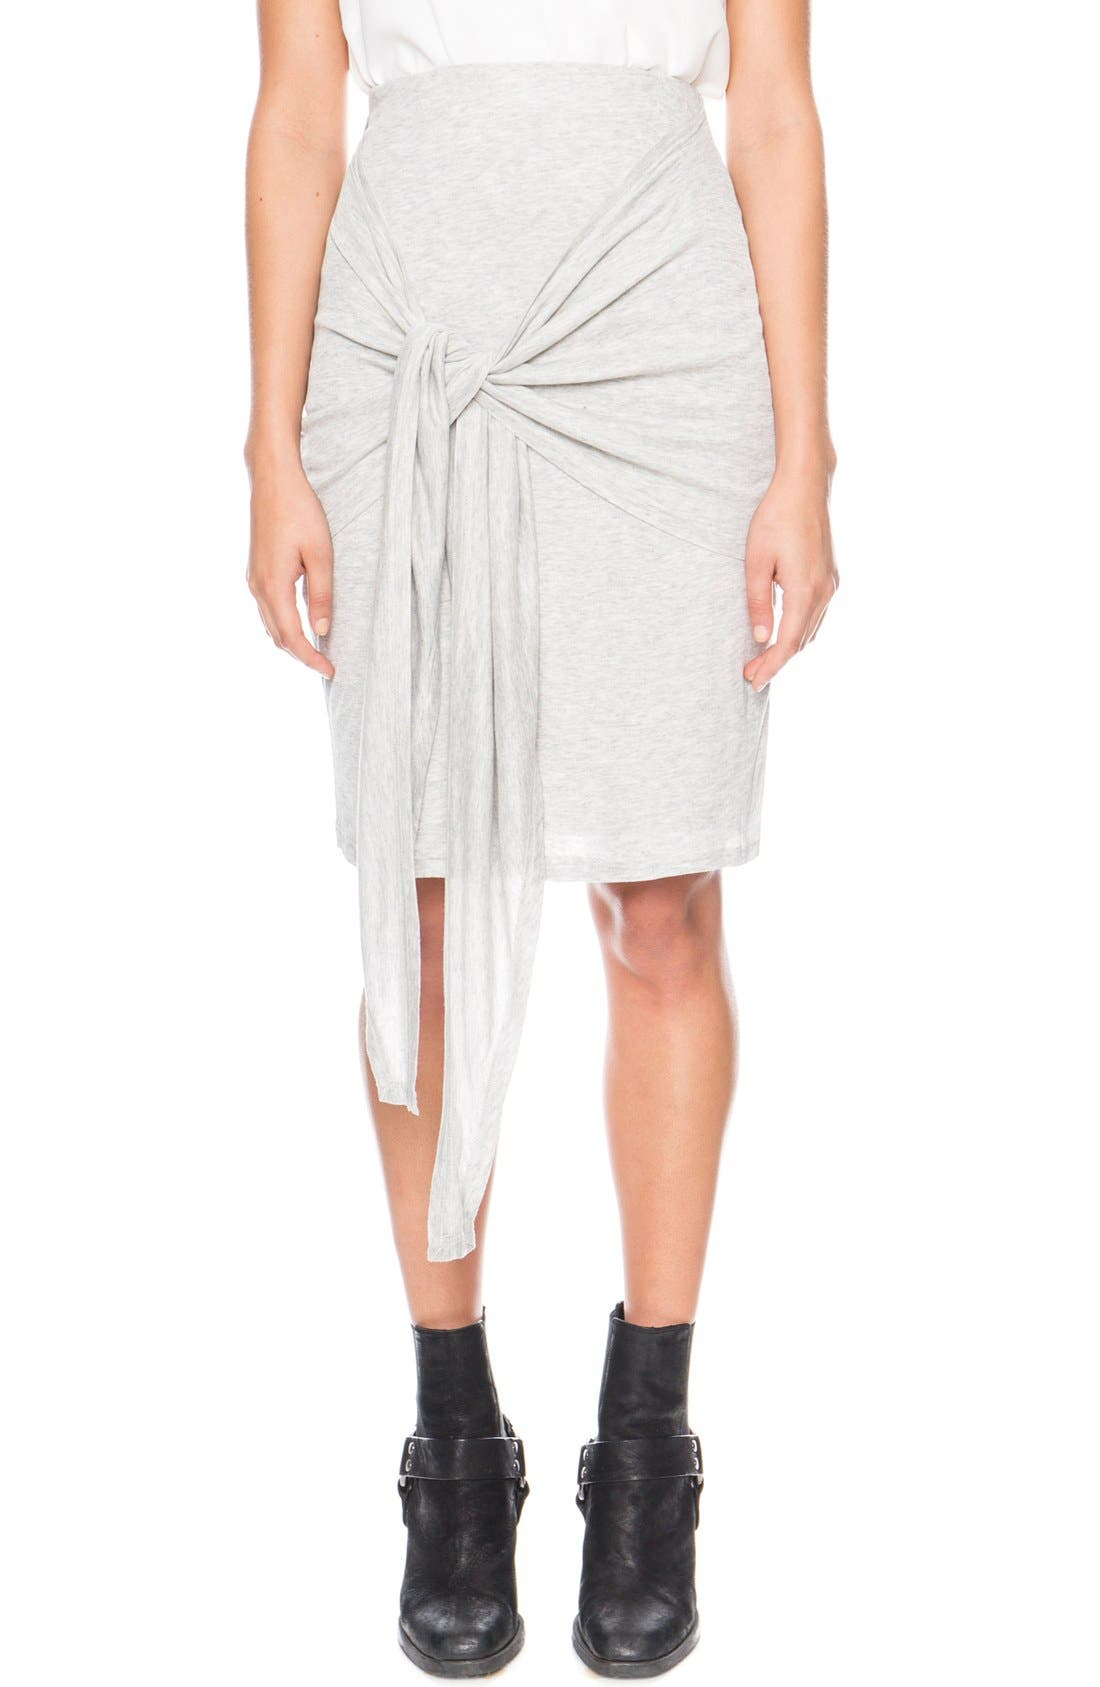 Alternate Image 1 Selected - The Fifth Label 'Discovery' Knit Pencil Skirt